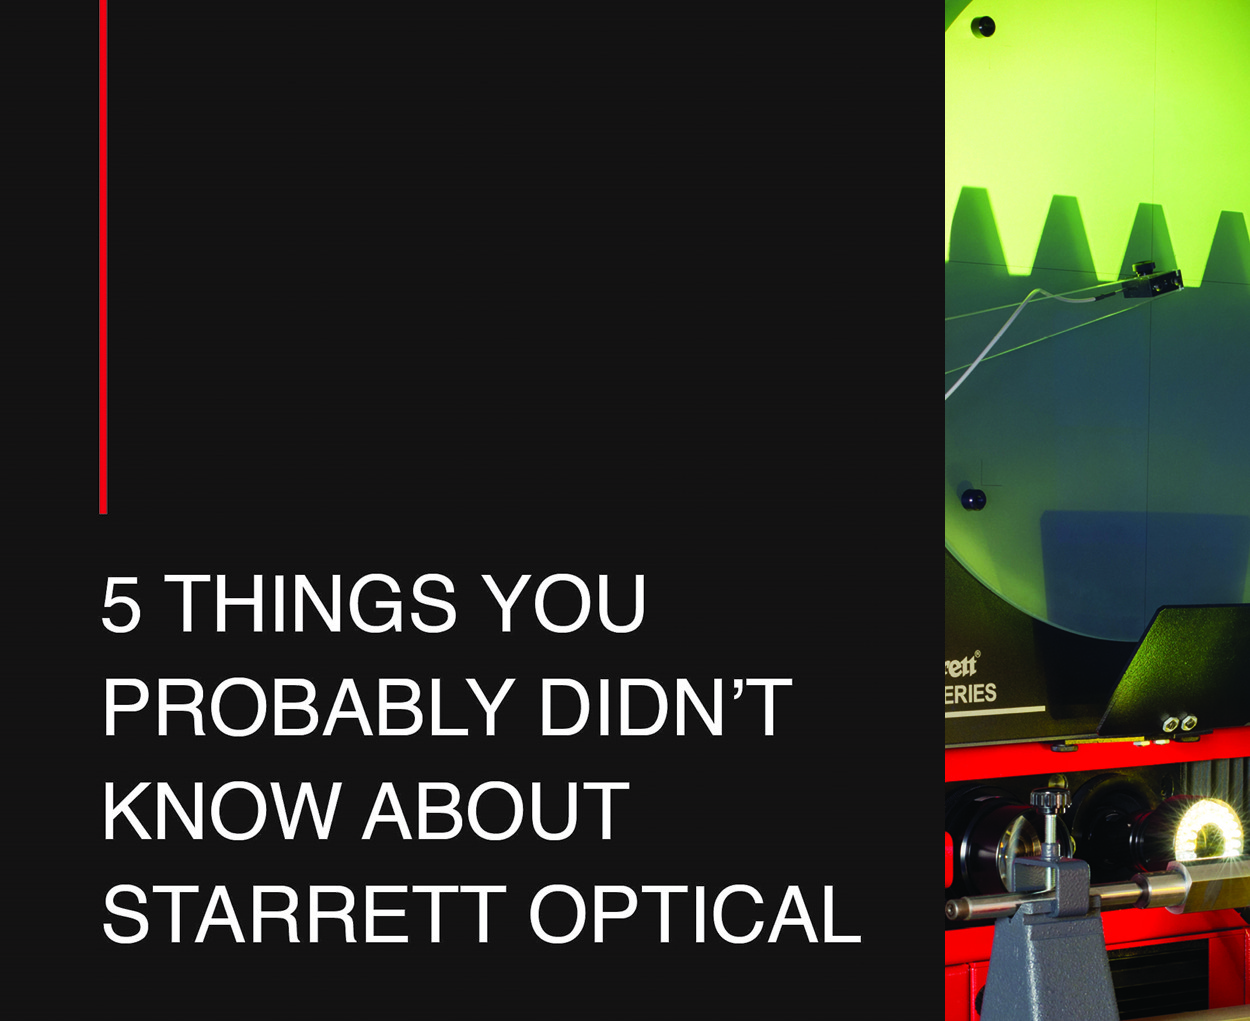 962, 962, 5 things you didnt know (Optical), 5-things-you-didnt-know-Optical.jpg, 1467241, https://starrett-metrology.co.uk/wp-content/uploads/2019/12/5-things-you-didnt-know-Optical.jpg, https://starrett-metrology.co.uk/5-things-you-probably-didnt-know-about-starrett-optical/5-things-you-didnt-know-optical/, , 4, , , 5-things-you-didnt-know-optical, inherit, 462, 2020-03-04 14:11:35, 2020-03-04 14:11:35, 0, image/jpeg, image, jpeg, https://starrett-metrology.co.uk/wp-includes/images/media/default.png, 1250, 1021, Array